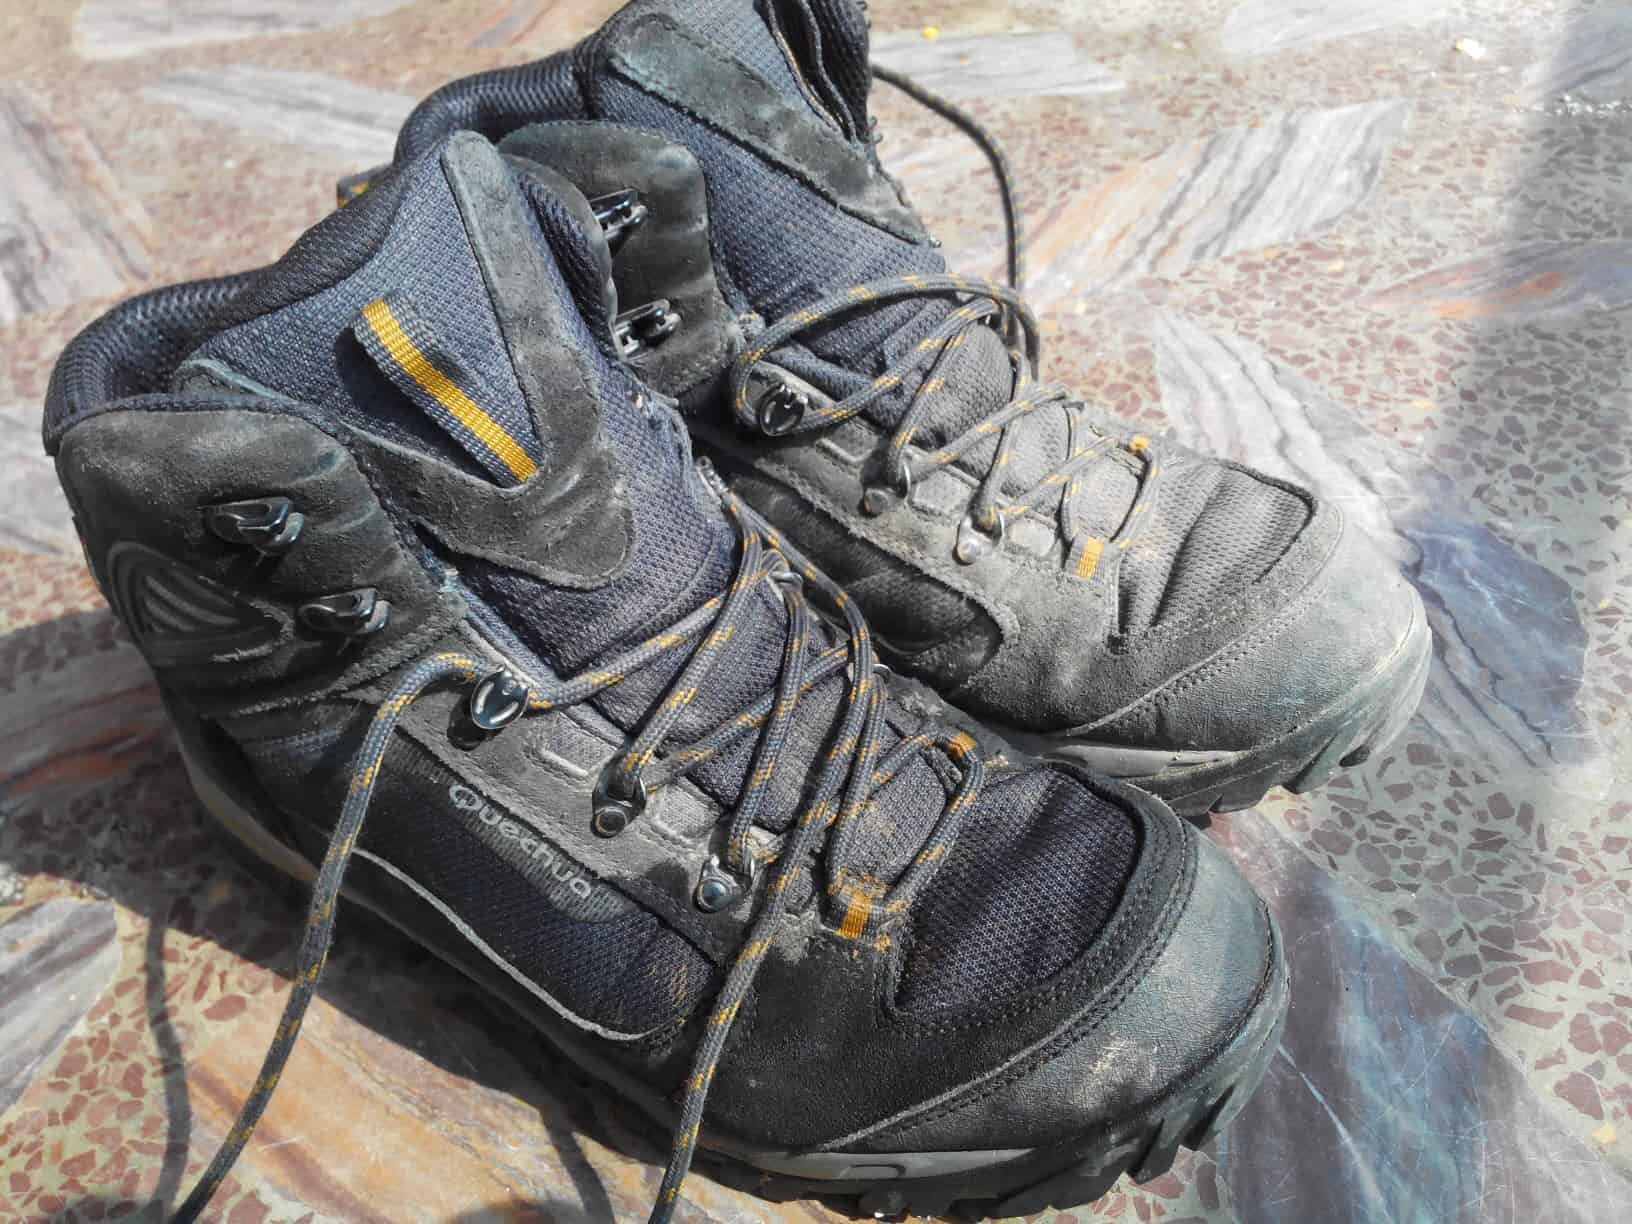 Forclaz 500 Ventiv Shoes Review